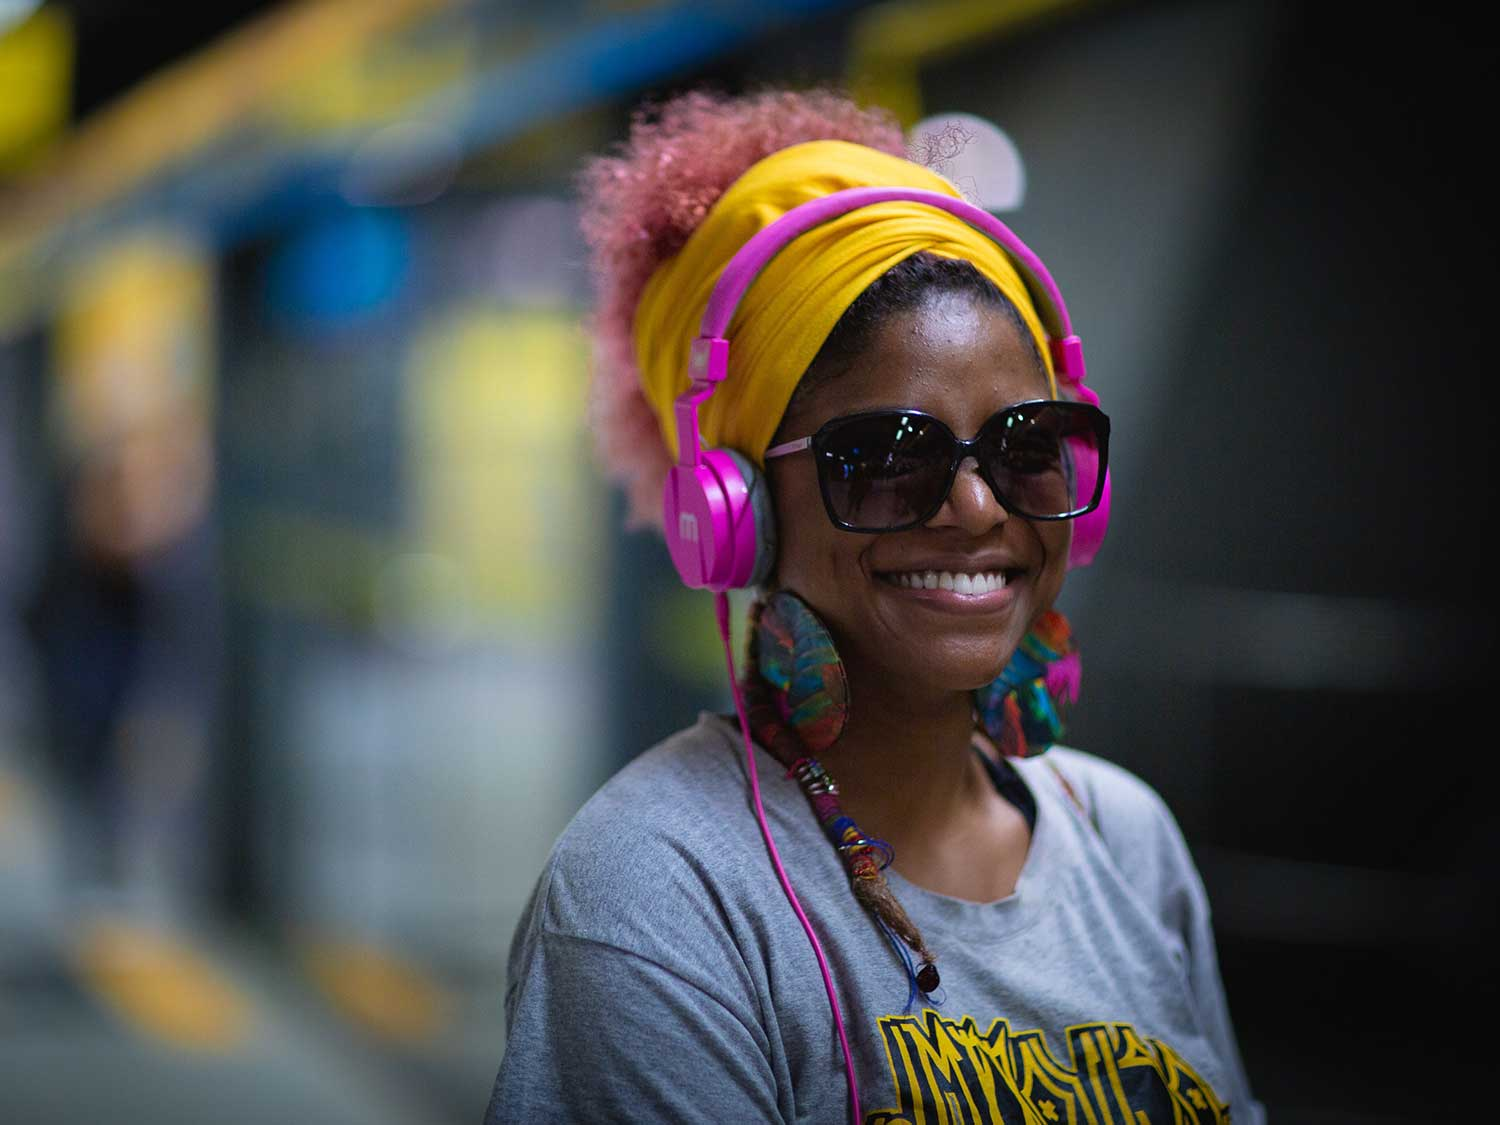 Woman listening to music through over-ear headphones.